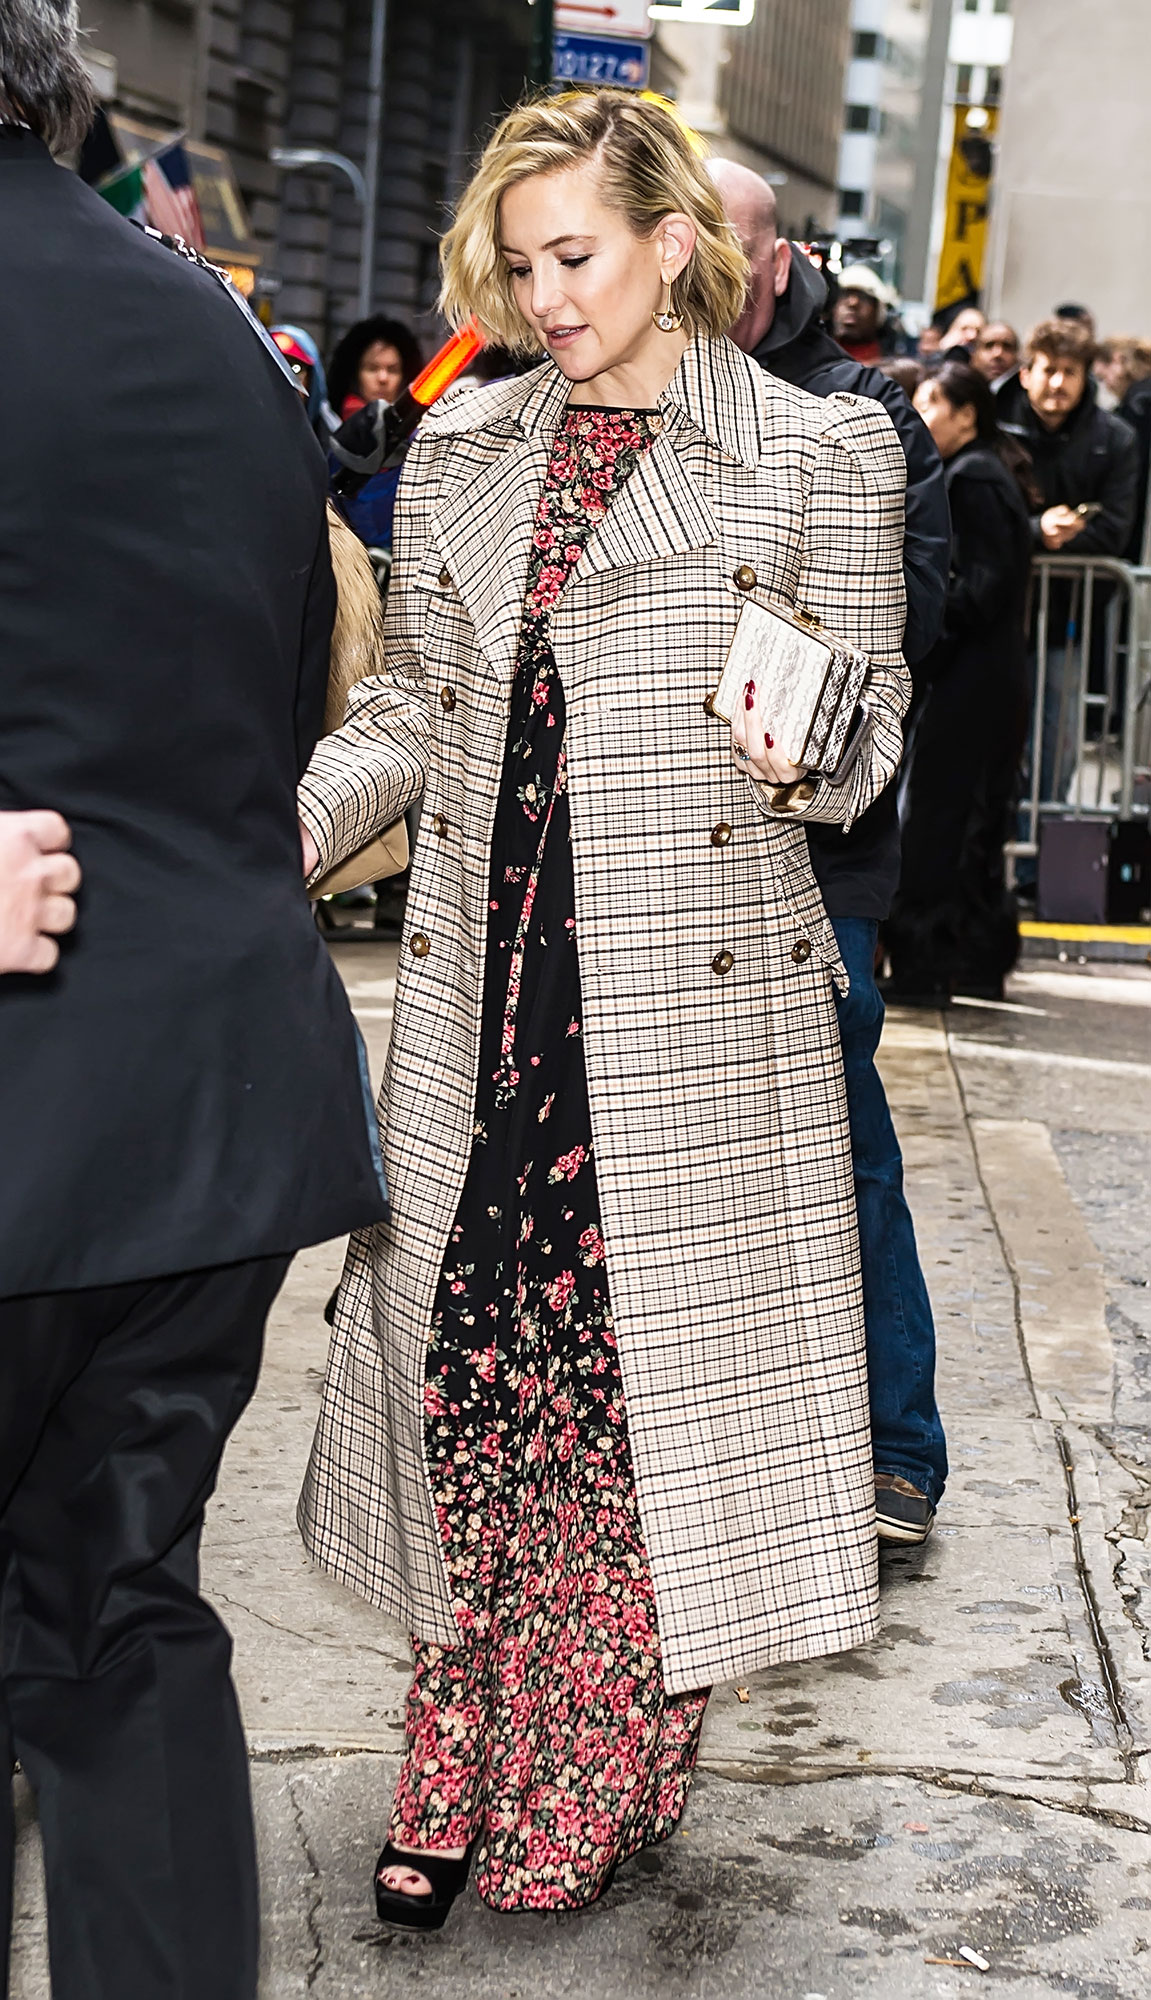 nyfw new york fashion week Kate Hudson - The new mom hit up the Michael Kors fashion show on February 13 wearing a plaid coat over a floral black and pink maxi dress.